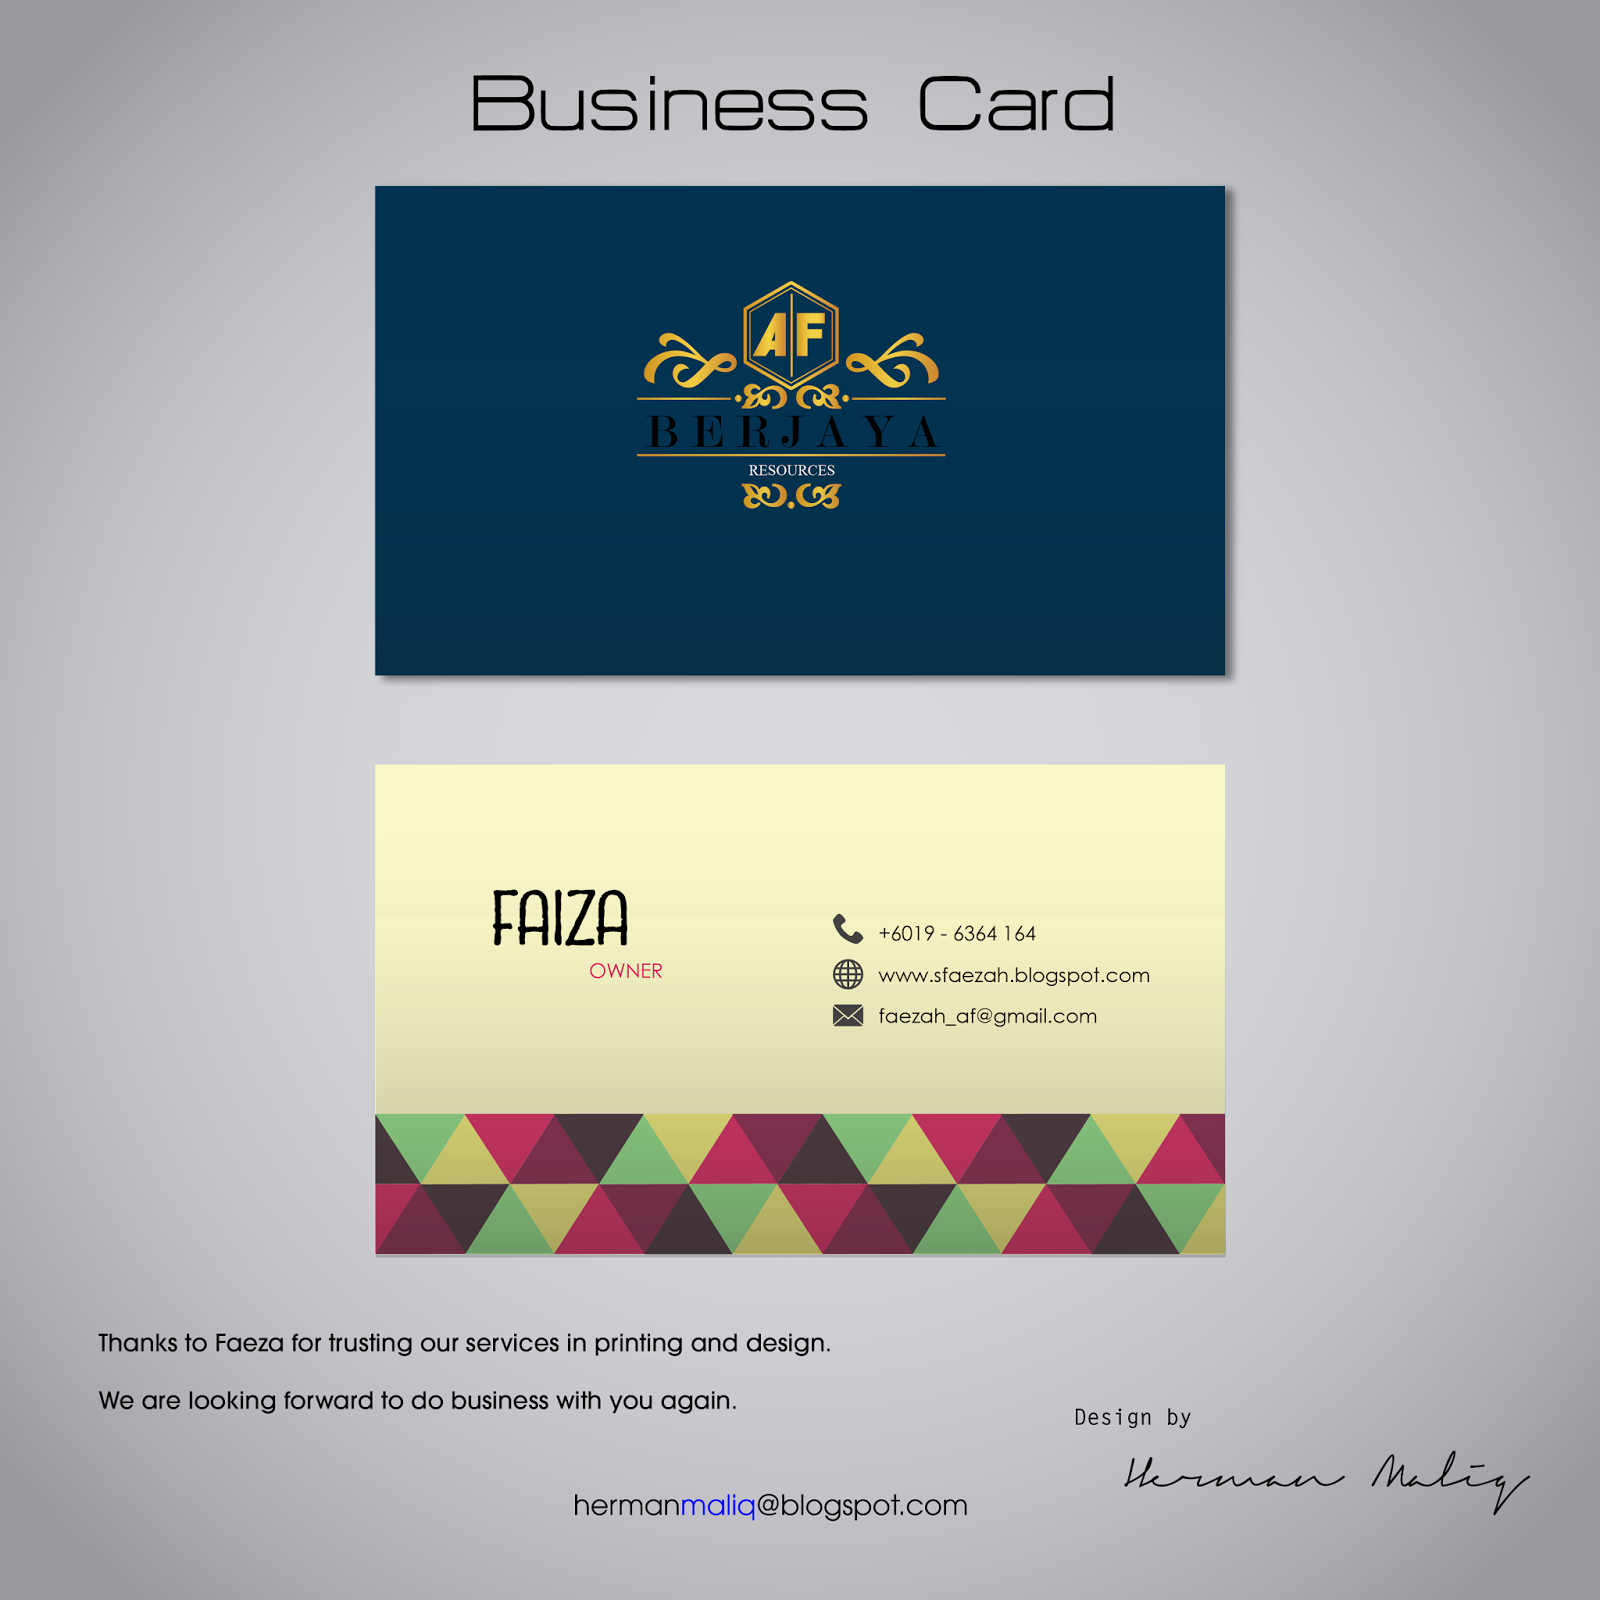 Panas cheap business card murah for Cheapest business cards online